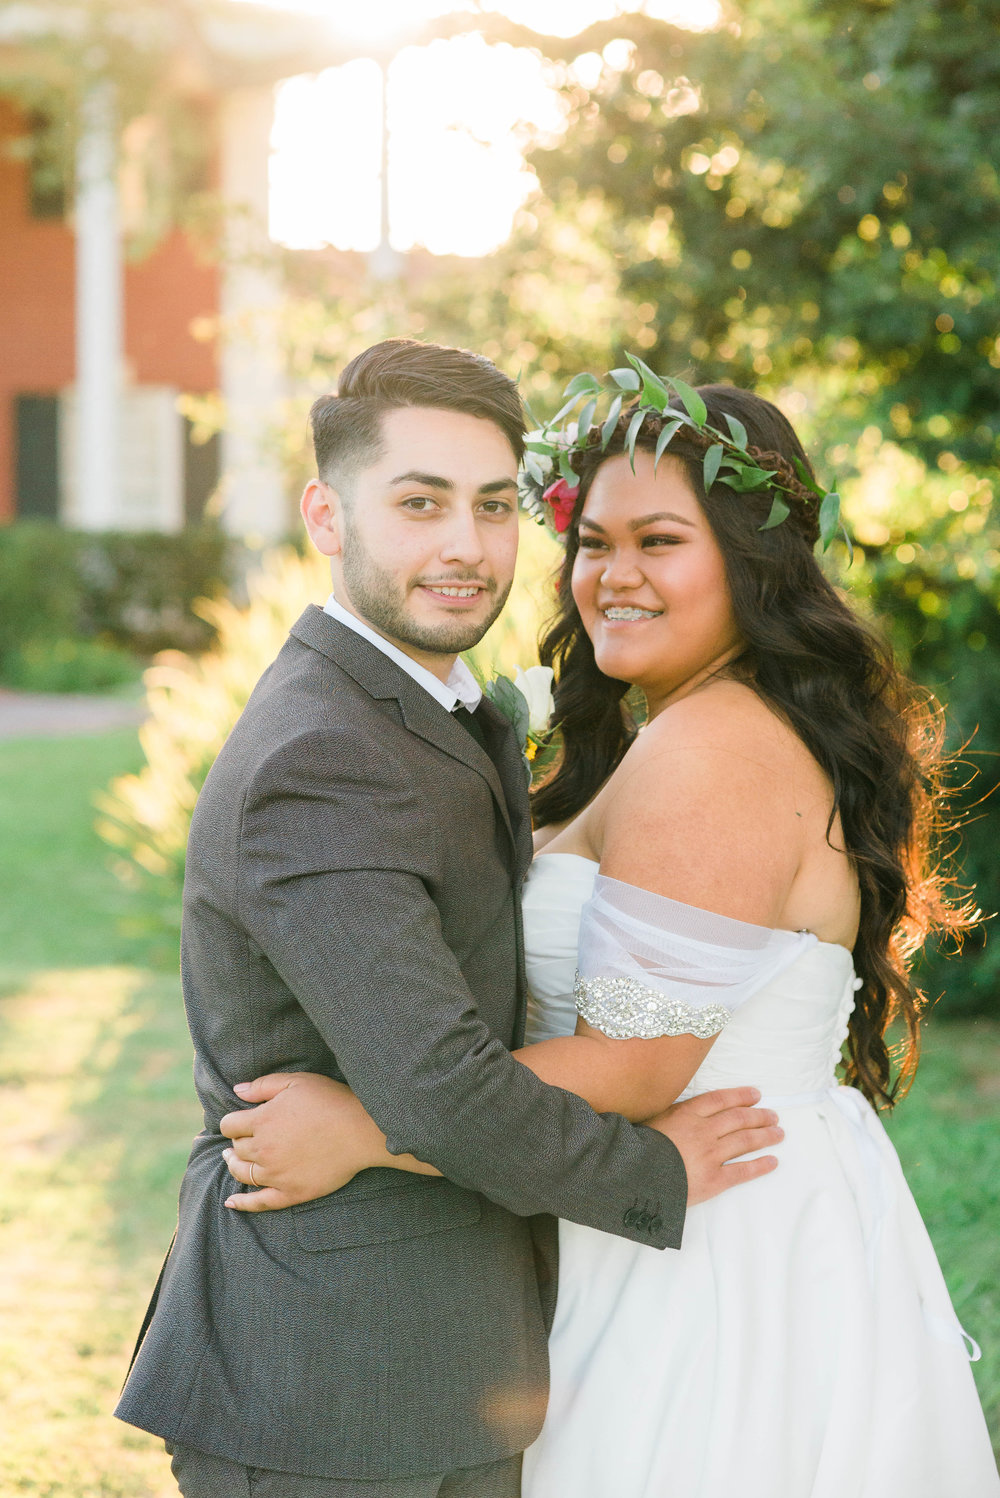 riverside-southern-california-wedding-photographer-ica-images-bride-and-groom-portraits5